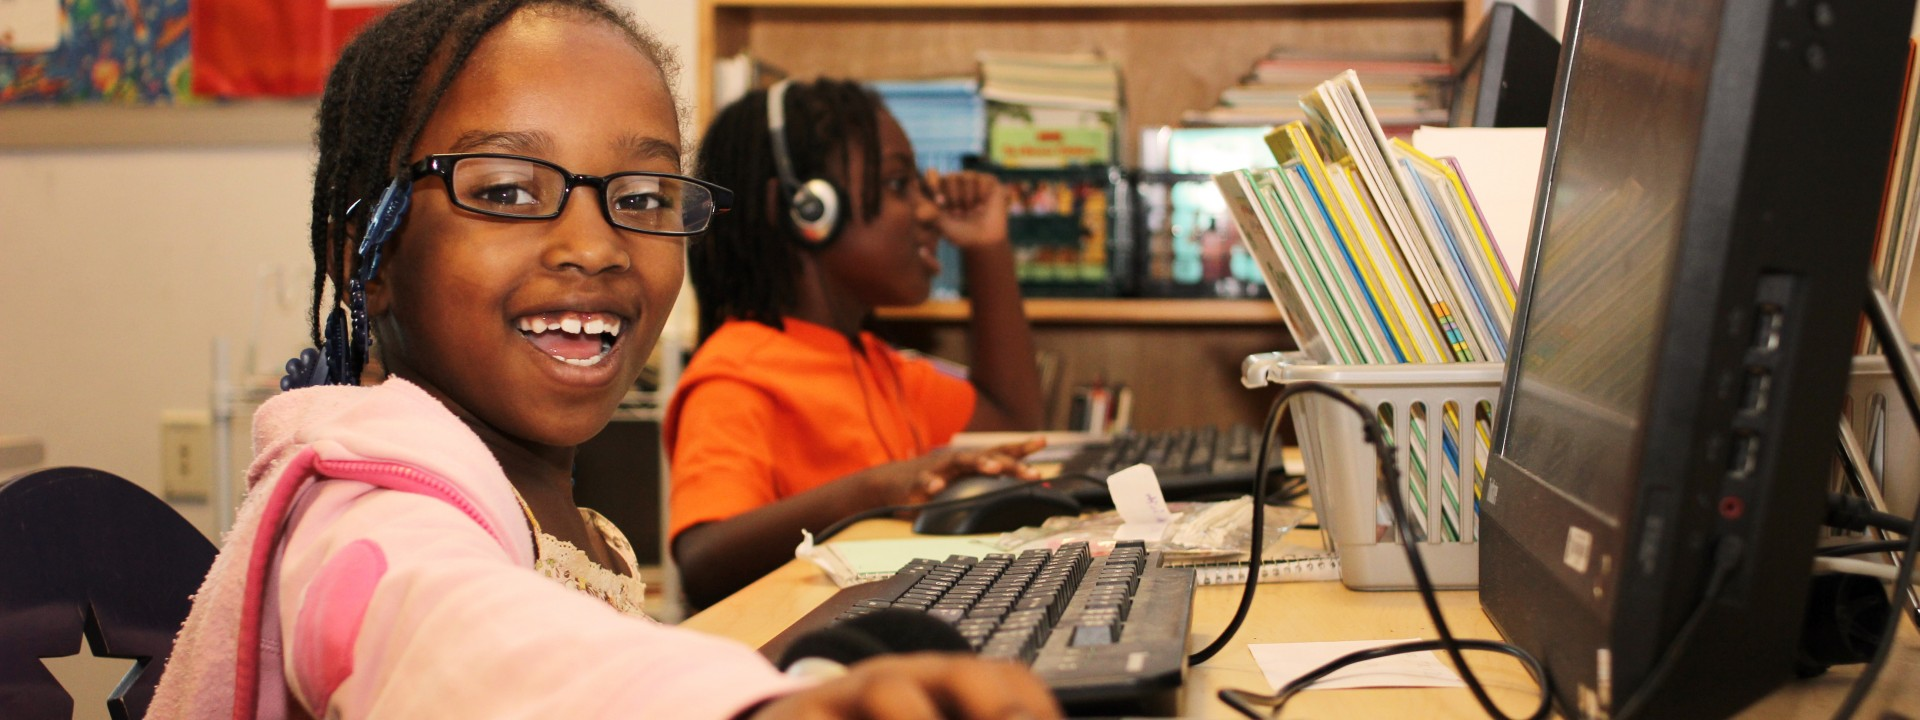 Smiling children using computers at the Honickman Learning Center Comcast Technology Labs